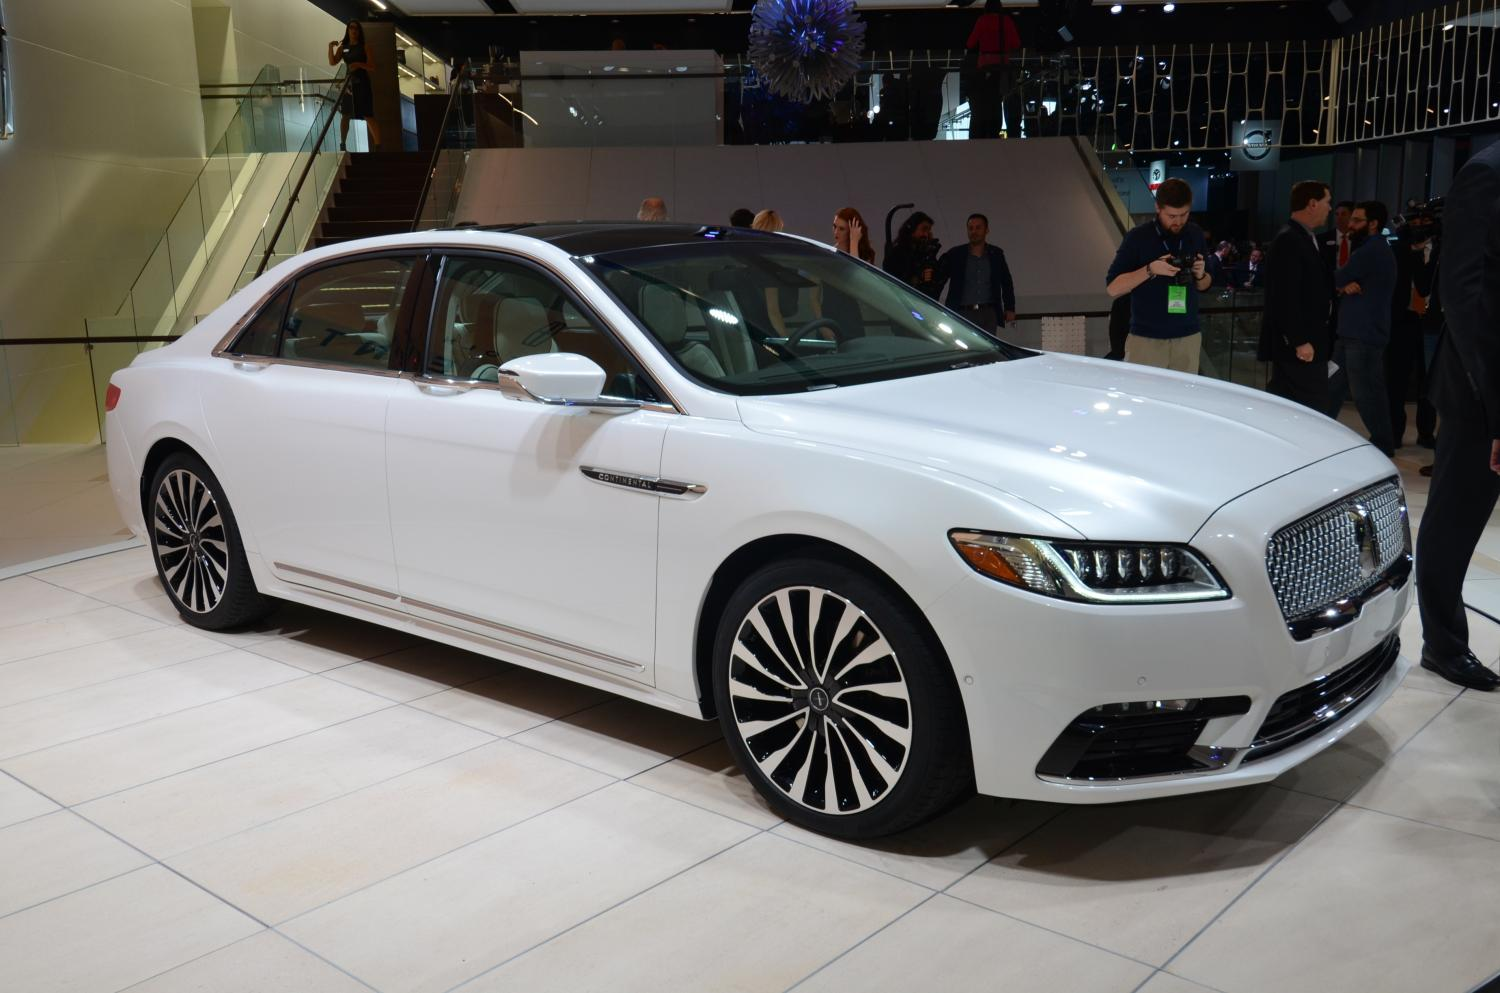 2016 Lincoln Continental Sedan Car